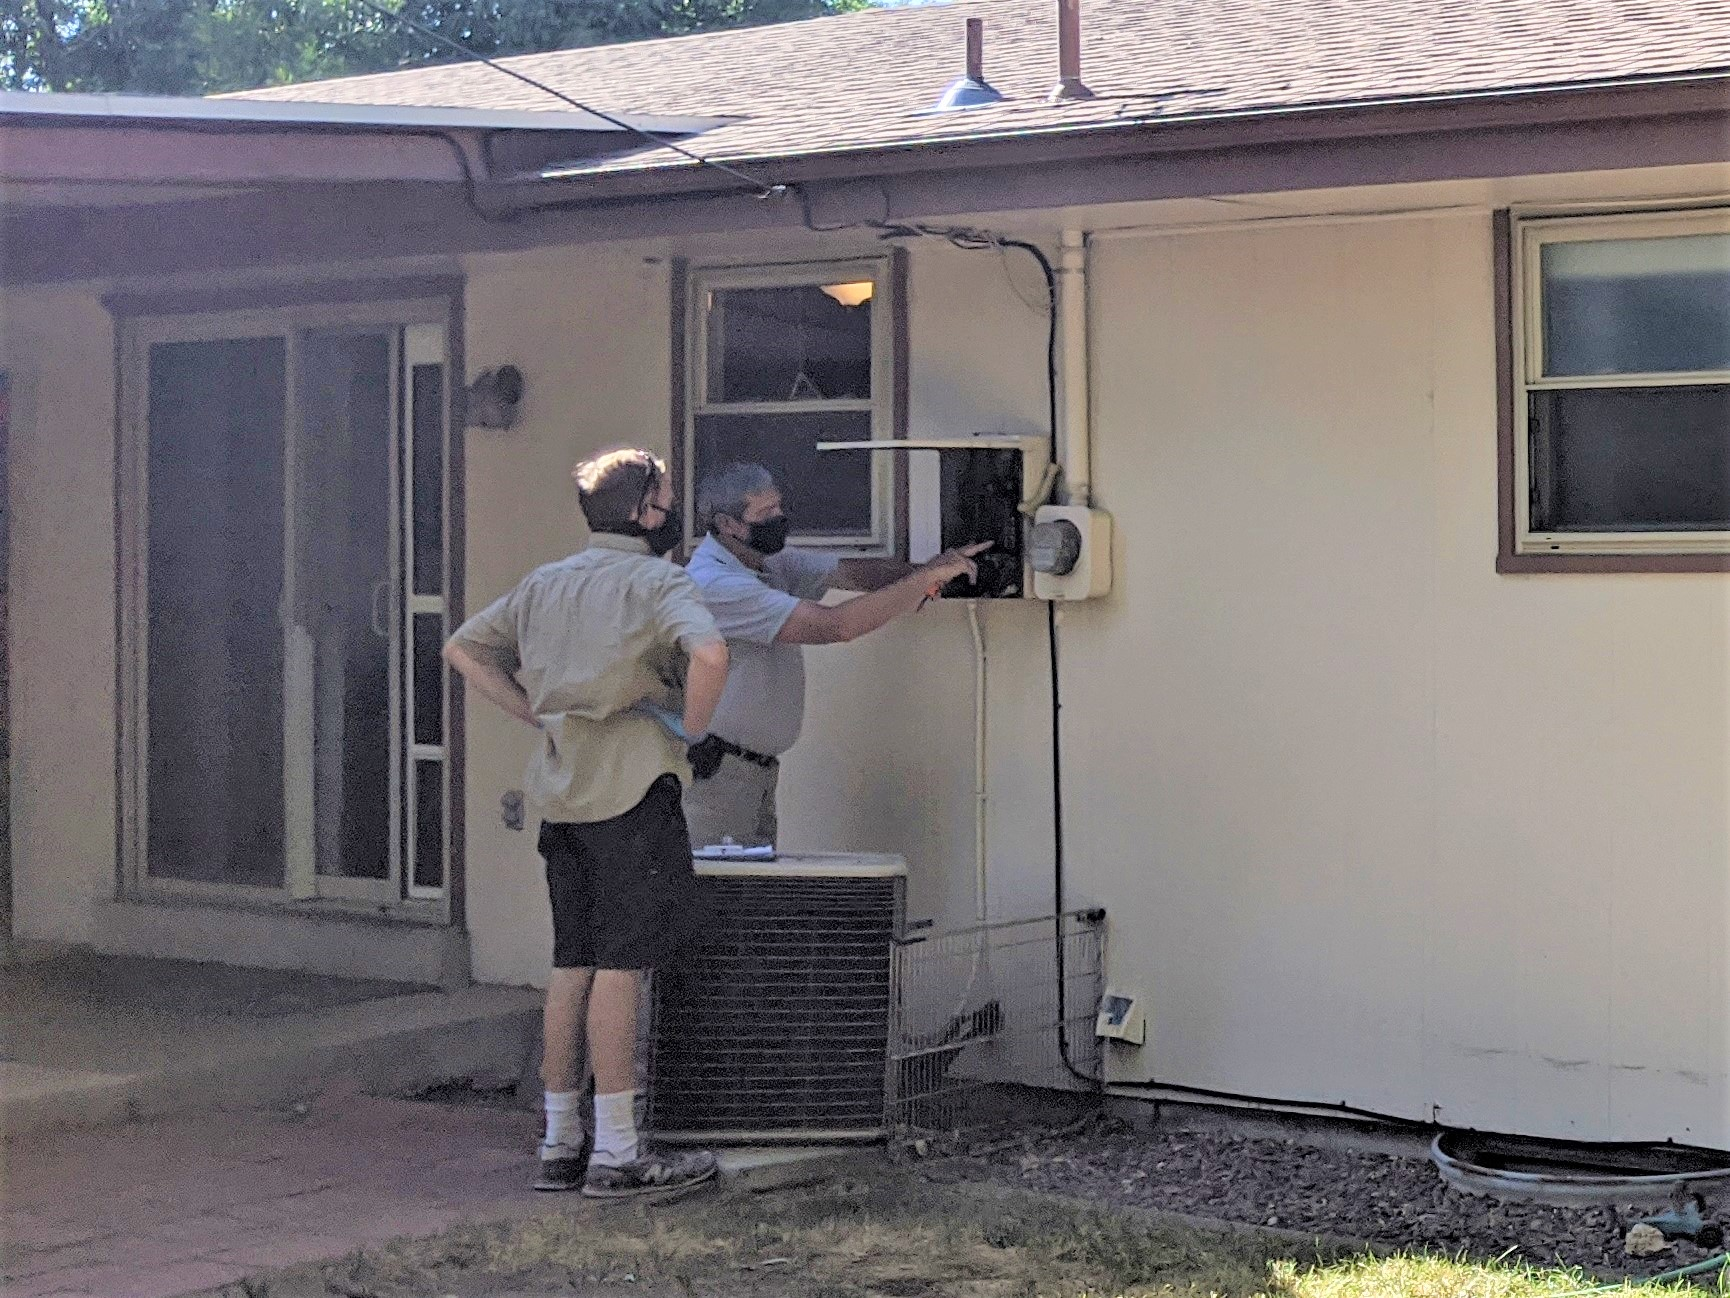 The home inspector explains to the homebuyer what he notices about the main electrical panel.